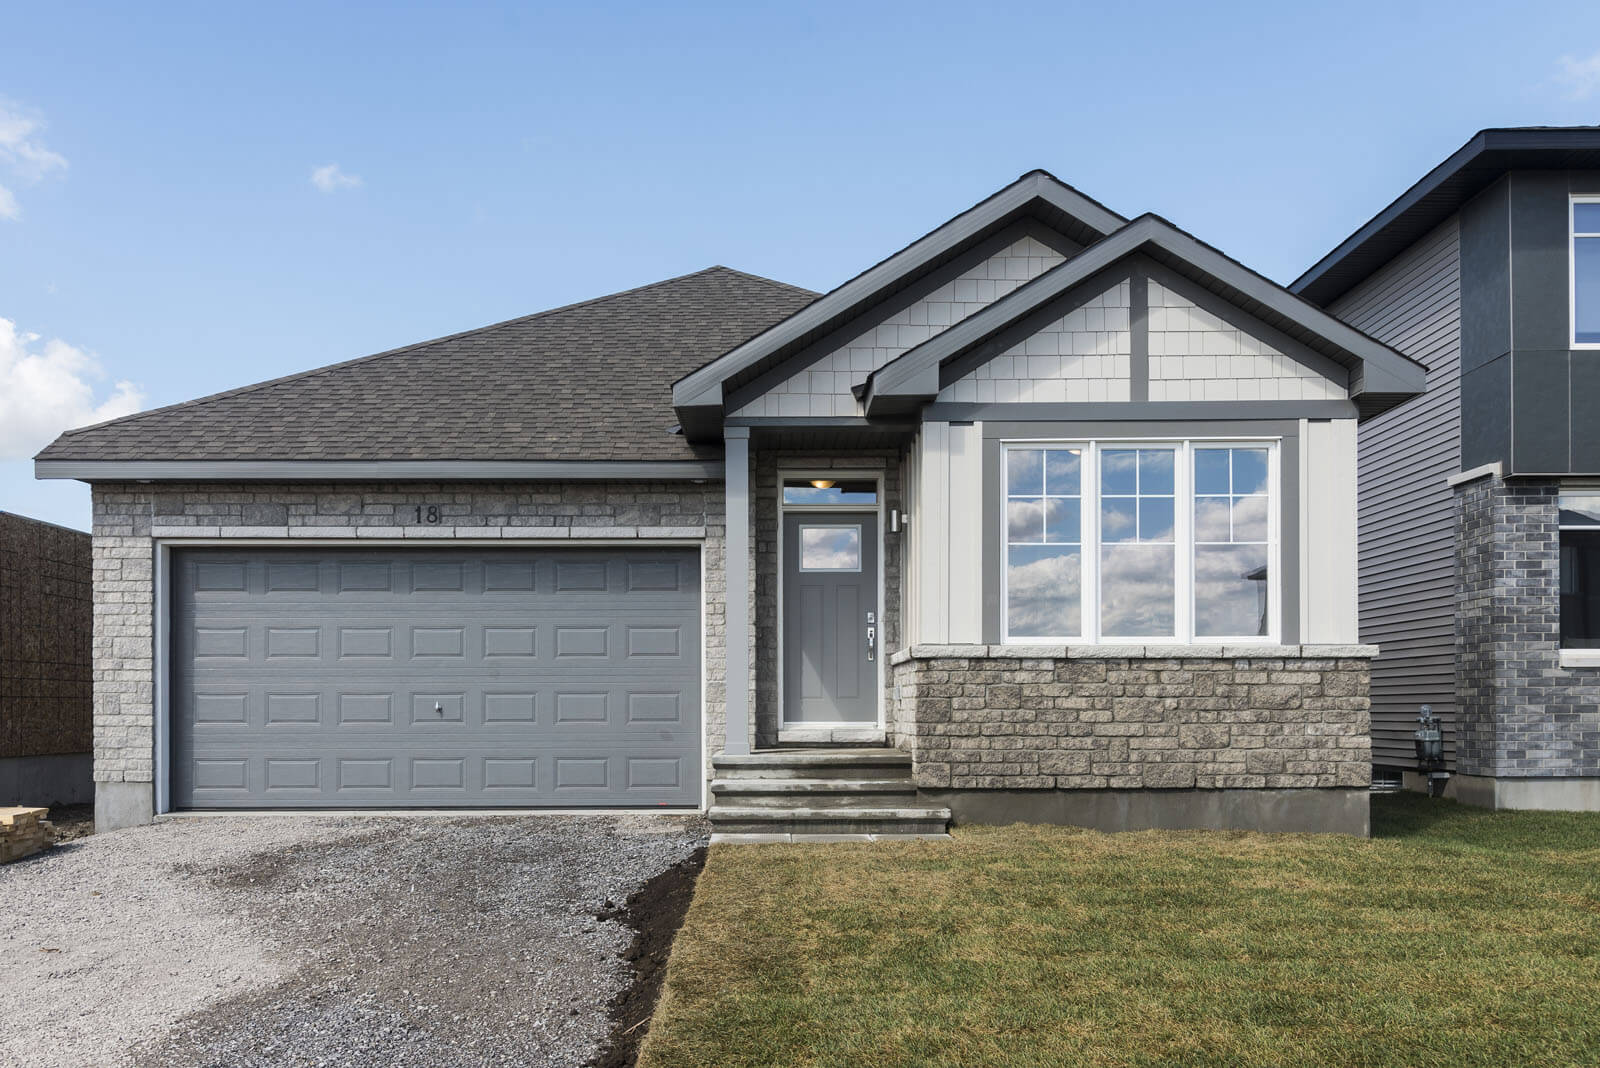 New Ottawa Single Family Home Quick Possession Lancaster in Millers Crossing in Carleton Place, located at 18 Fanning St, Carleton Place Built By Cardel Homes Ottawa